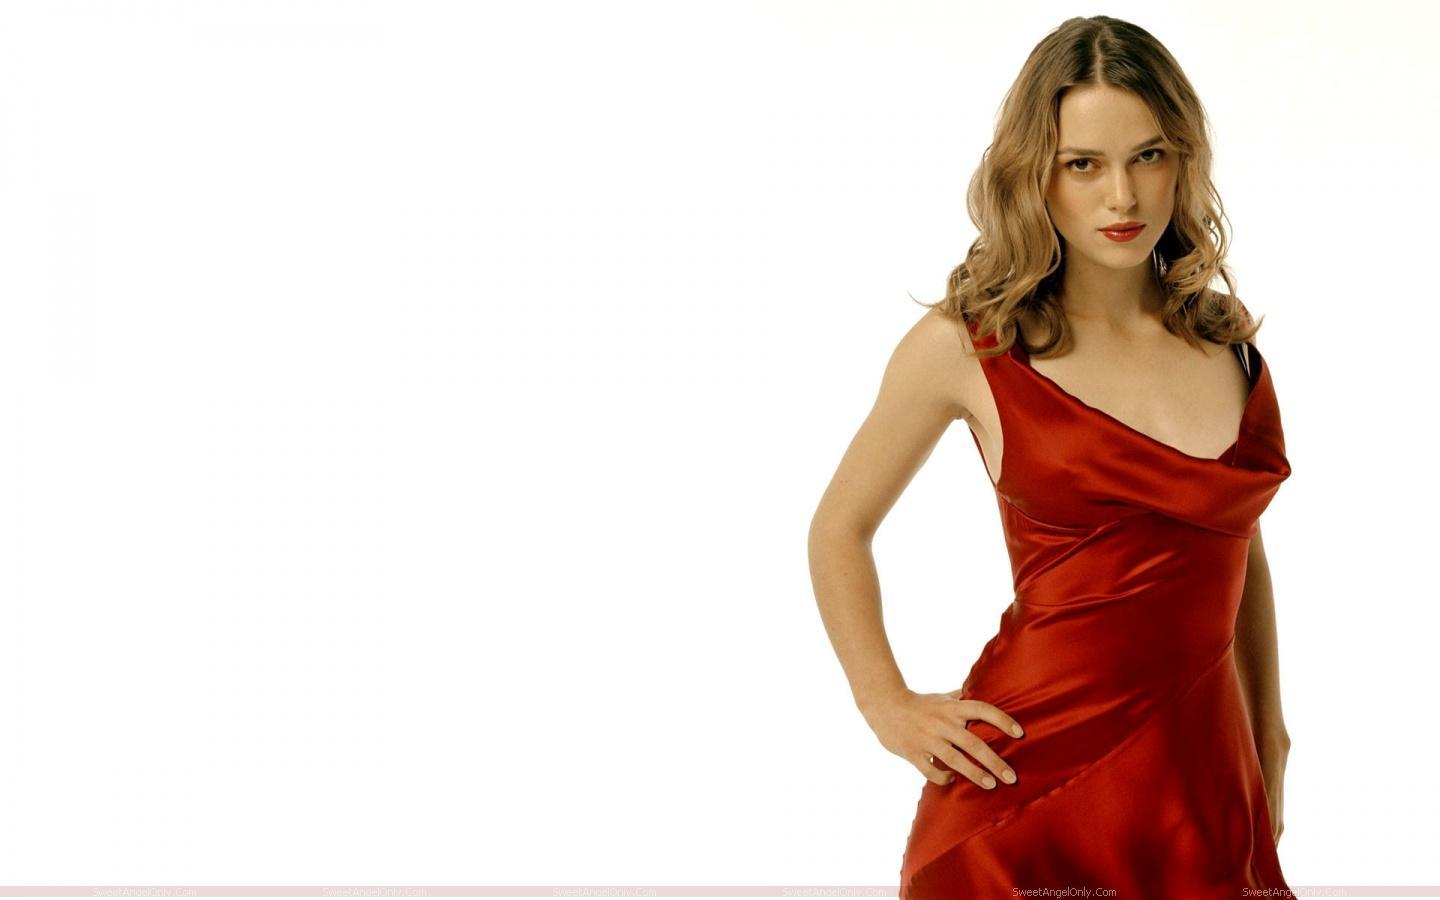 http://1.bp.blogspot.com/-66gQ6OYSkGQ/UBjEV4OJdeI/AAAAAAAAASI/0fuA01NXjxc/s1600/actress_keira_knightley_hot_wallpaper_sweetangelonly_19.jpg